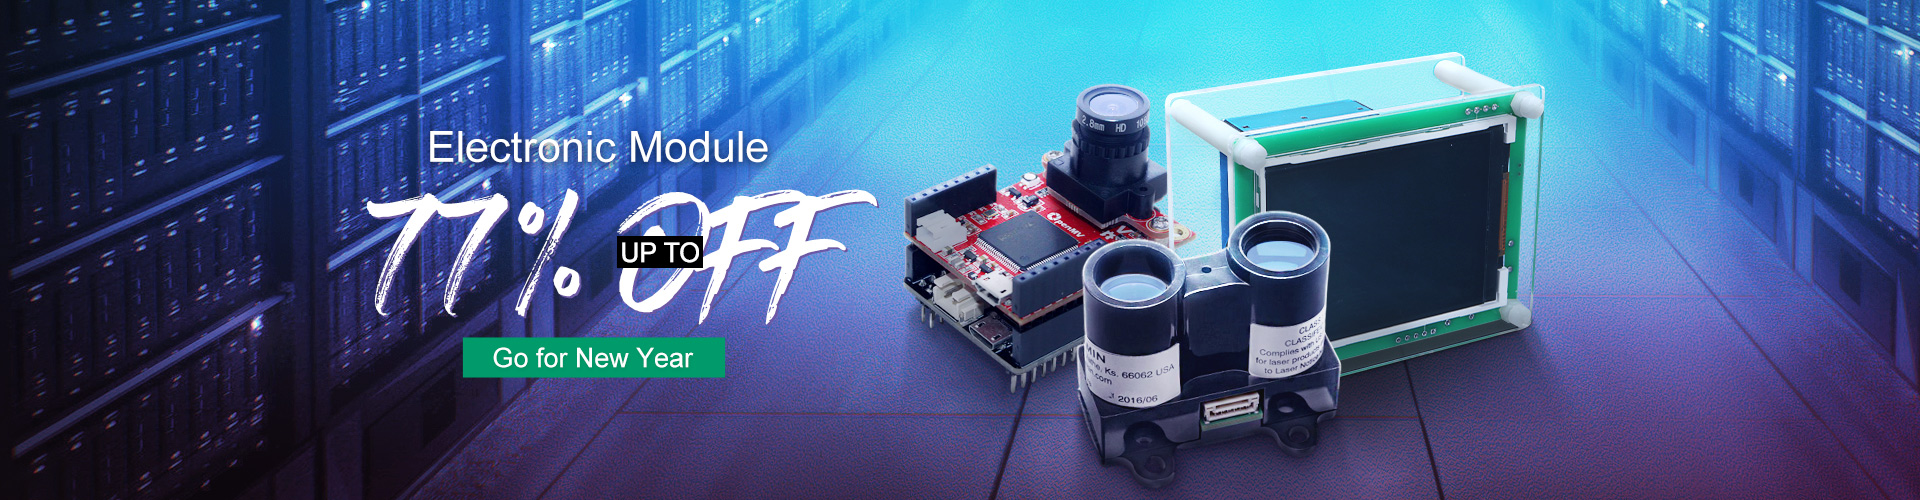 Electronic Module Up to 77% OFF